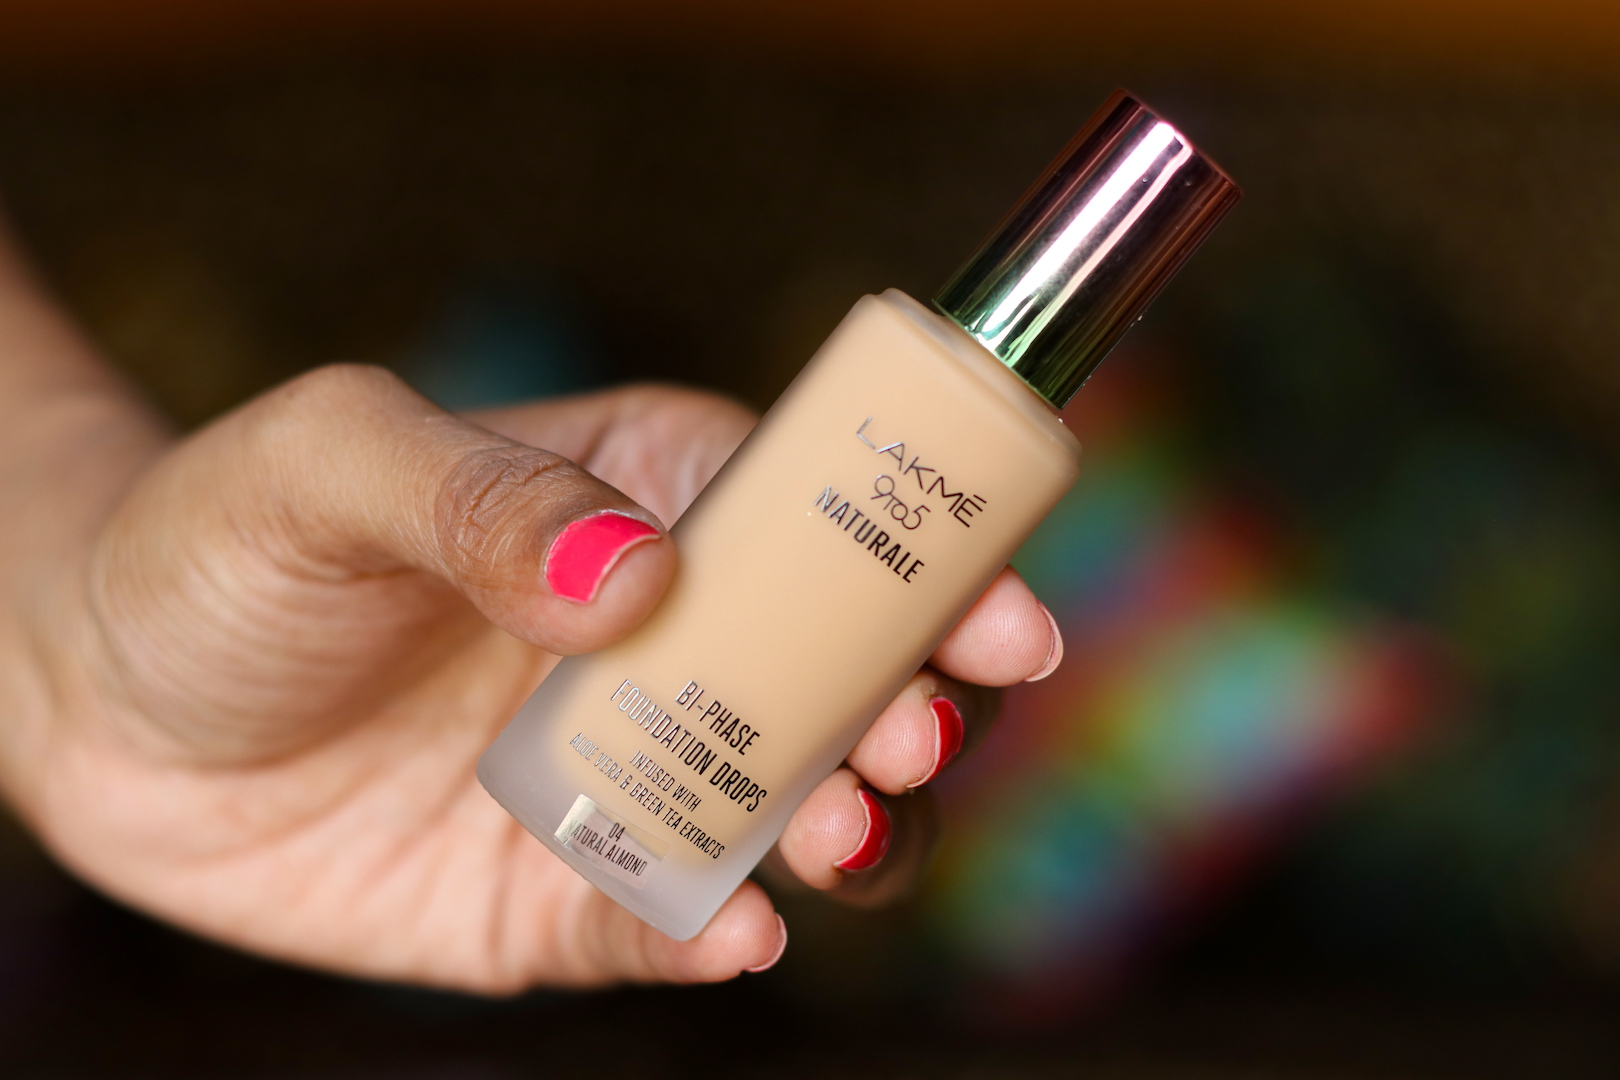 Lakme 9 to 5 Naturale Foundation Drops Review Swatches Photos